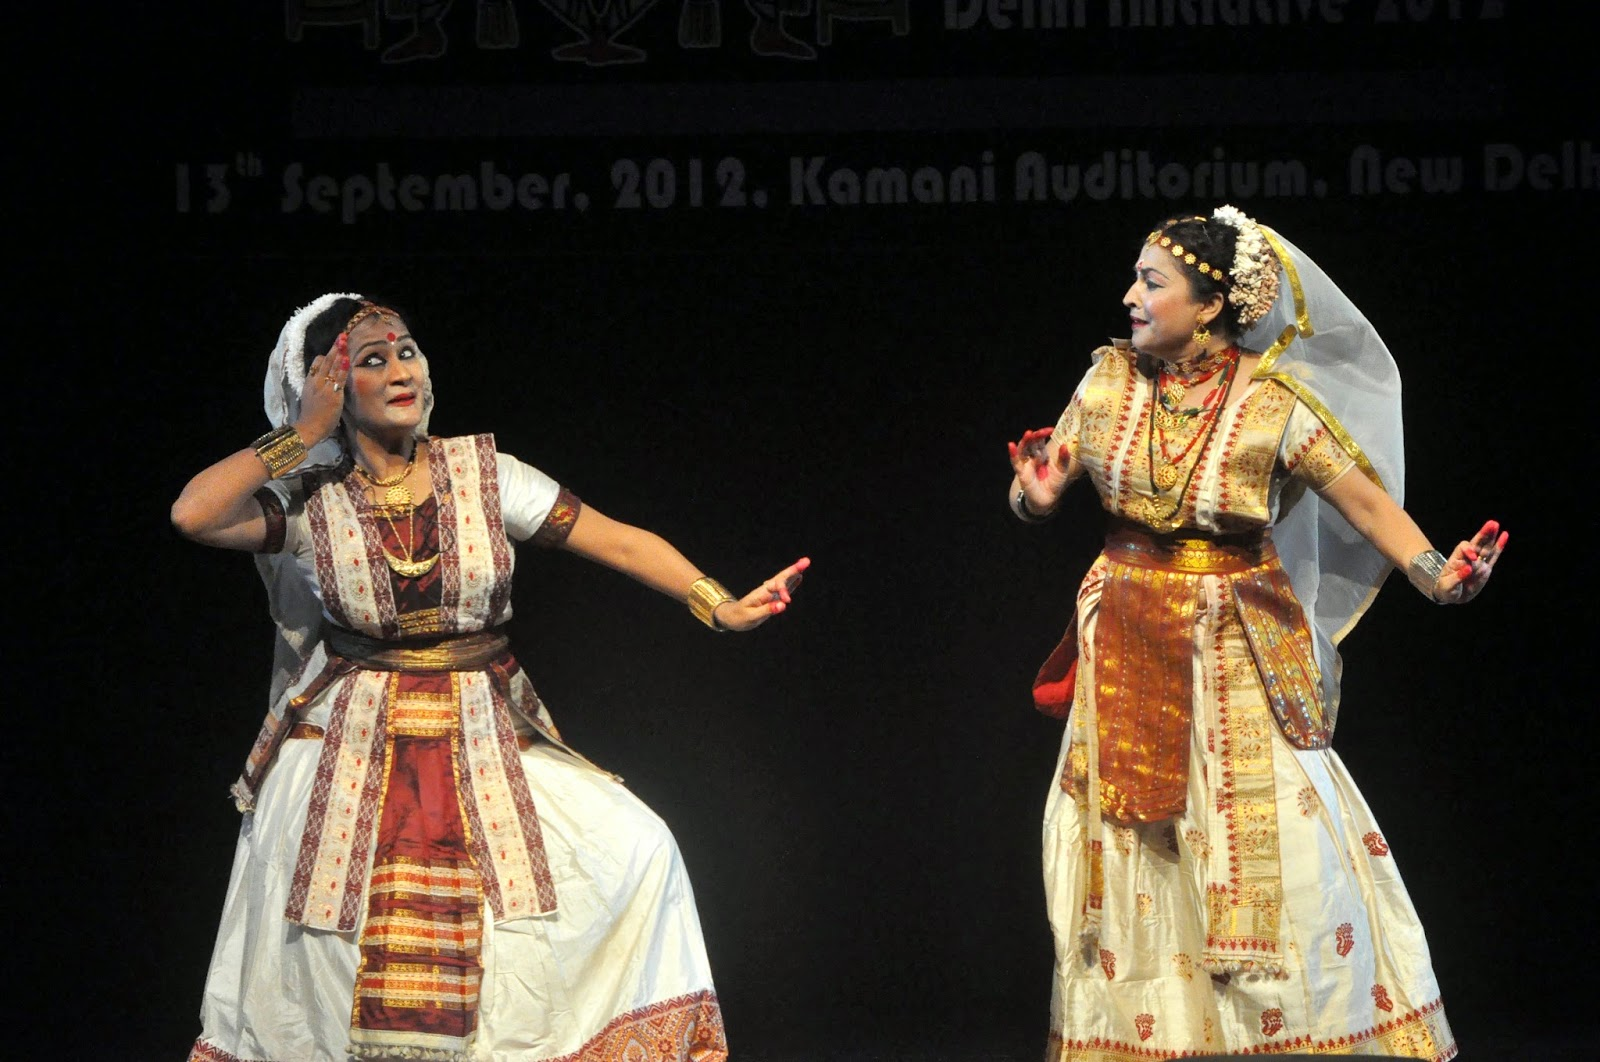 Sankaradeva Movement: An effort to explore the culture of Assam